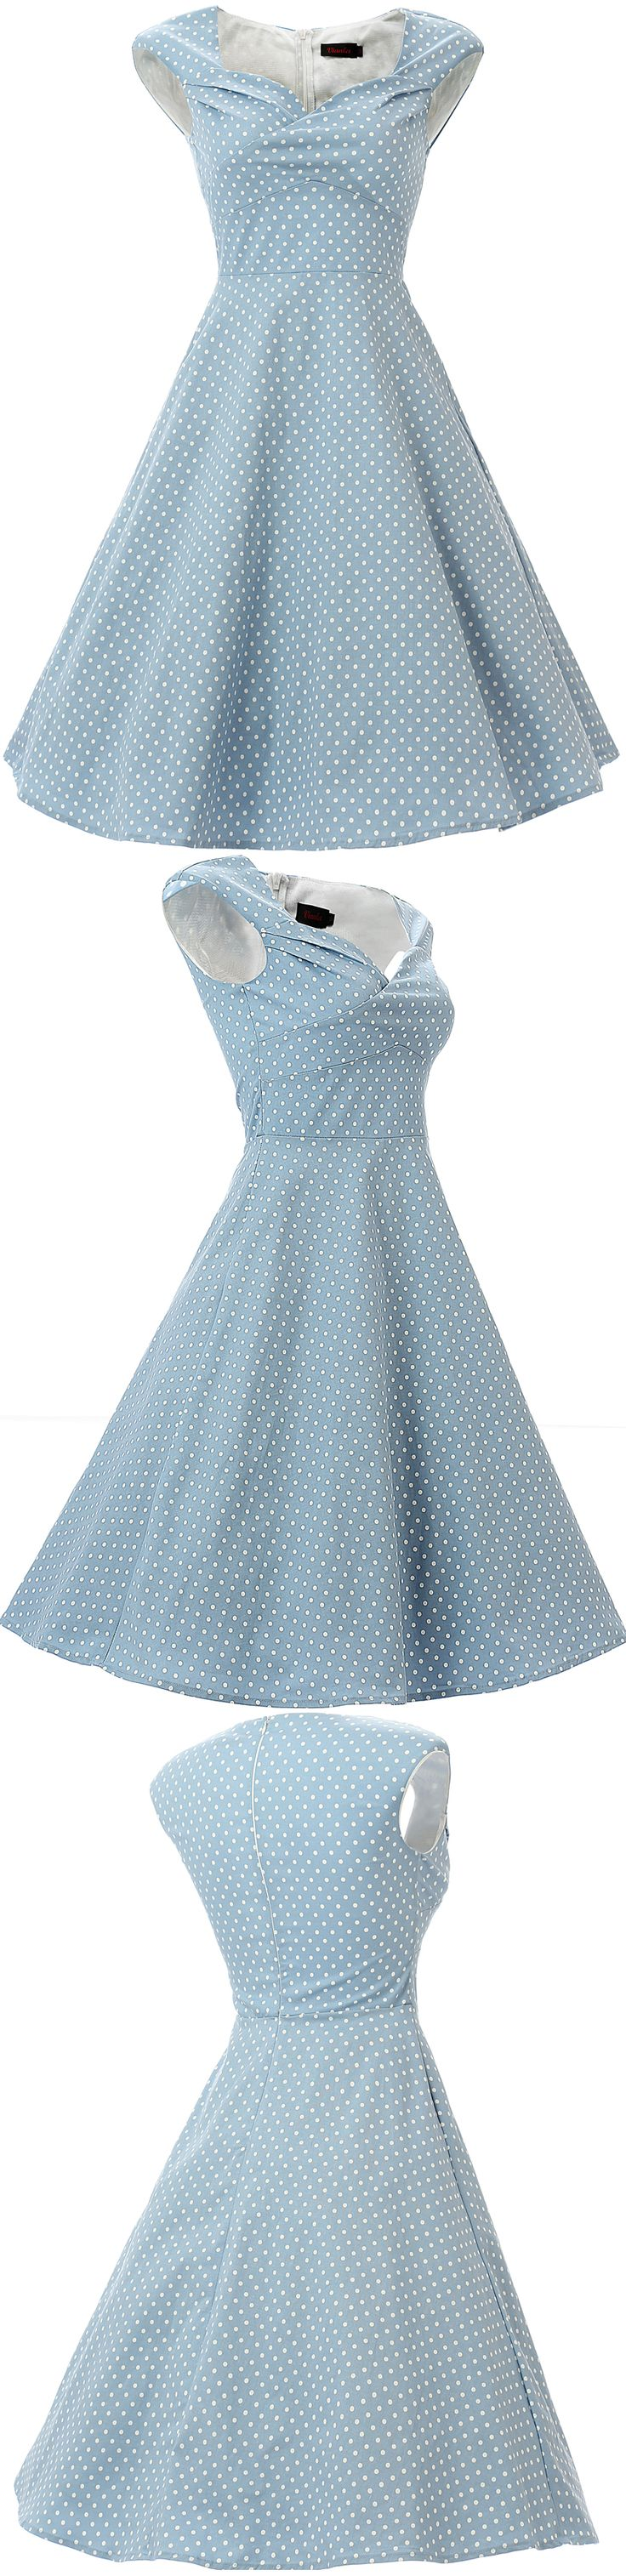 Vianla Women's 1950s Dress Vintage Capshoulder Party Sewing Dresses,Blue 50s Vintage Polka Dots Swing Midi Dress, #blue dress #Vintage  #1950s